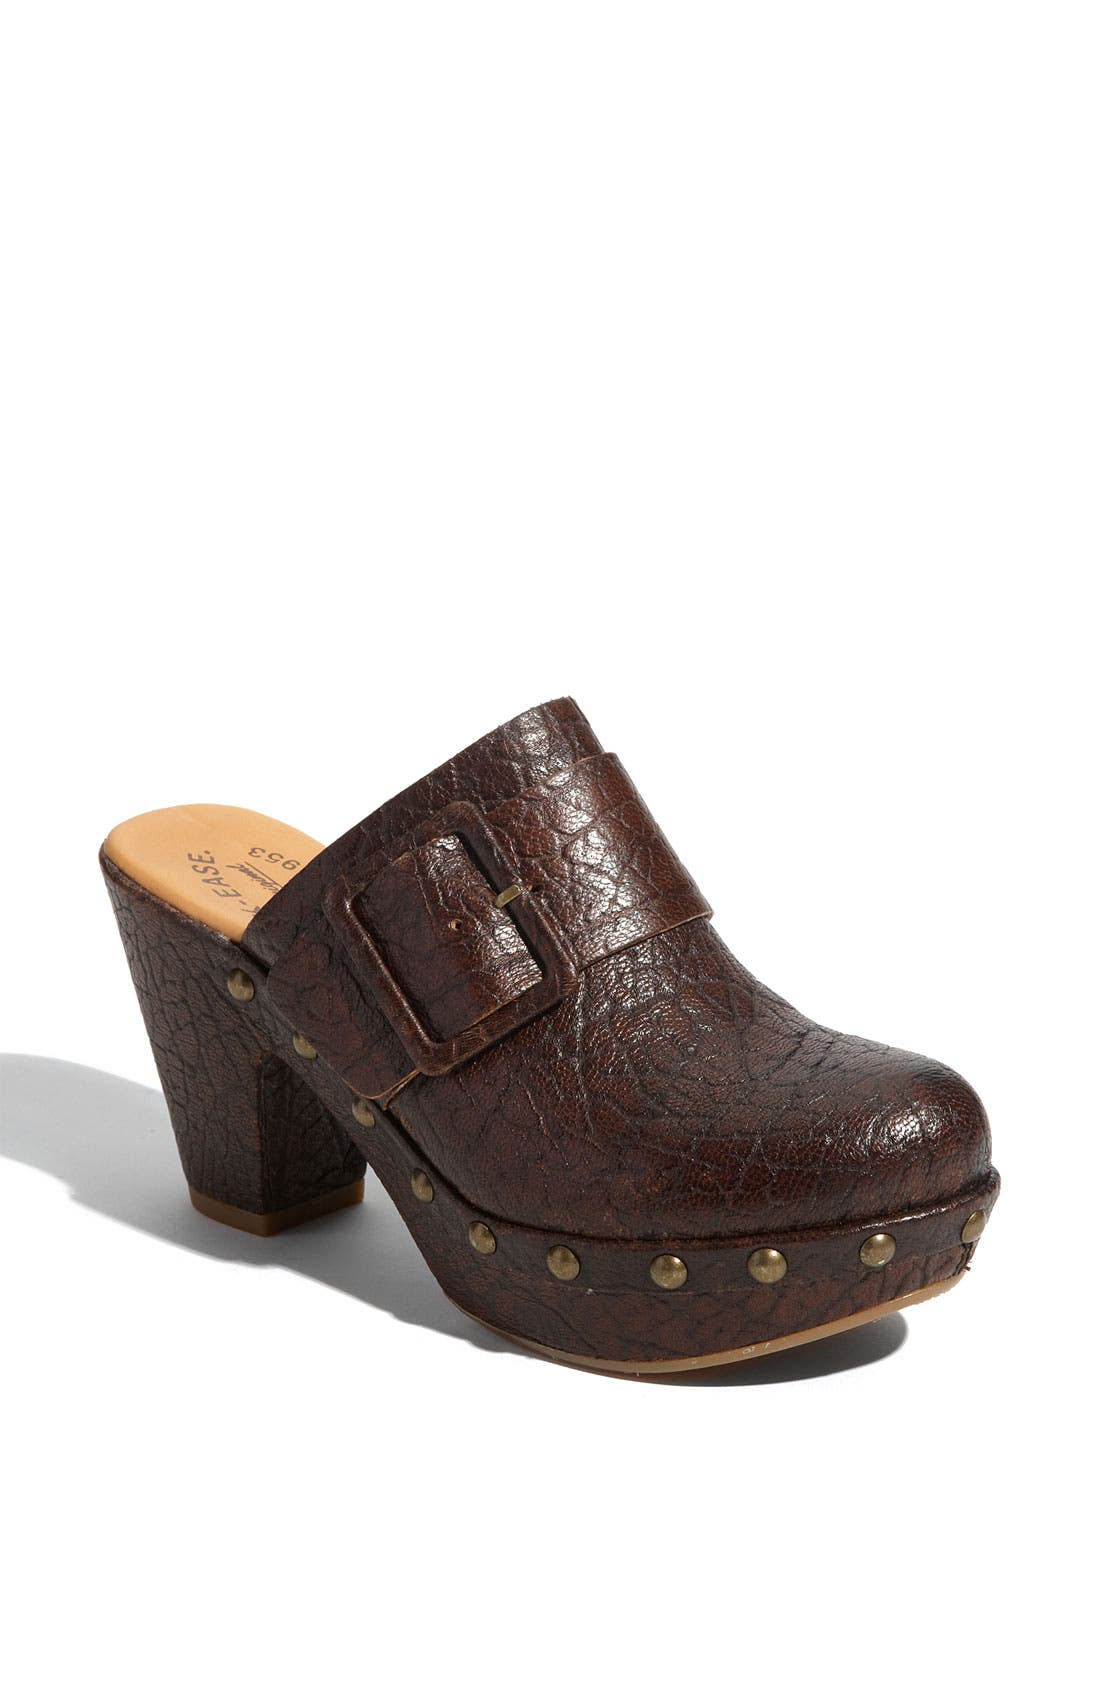 Alternate Image 1 Selected - Kork-Ease 'Madison' Mule